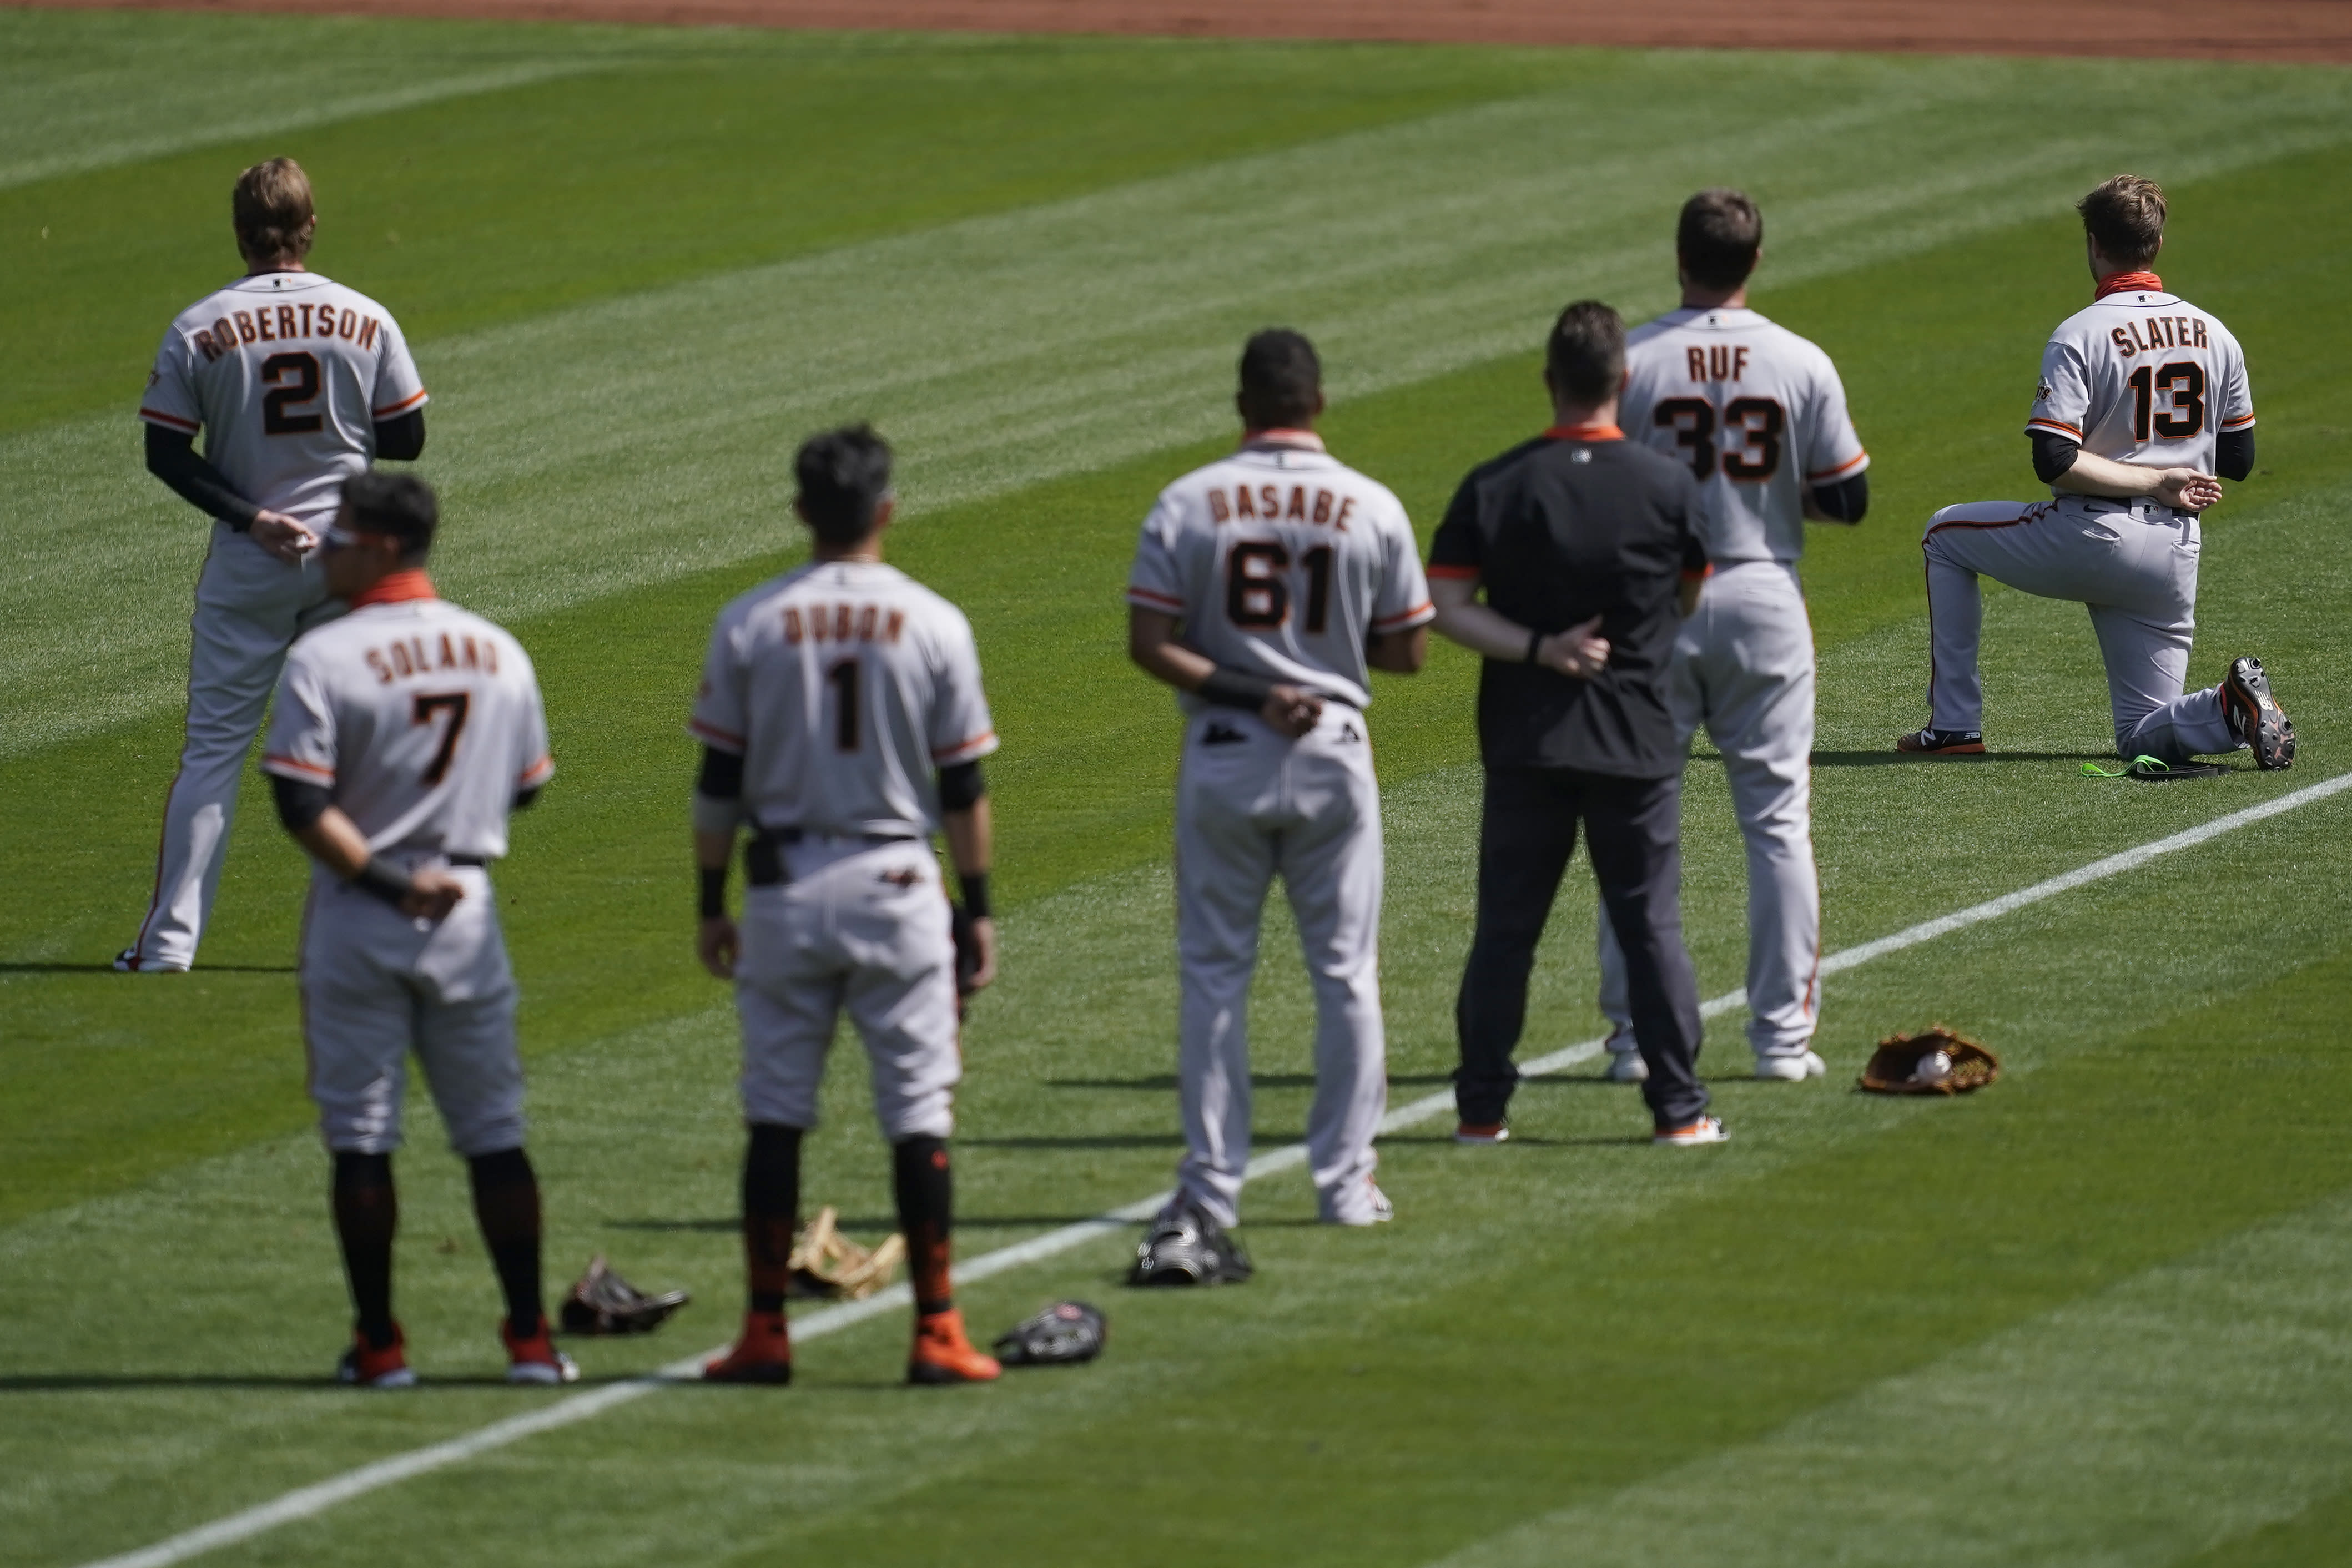 San Francisco Giants' Austin Slater (13) kneels during the national anthem before a baseball game against the Oakland Athletics in Oakland, Calif., Saturday, Sept. 19, 2020. (AP Photo/Jeff Chiu)